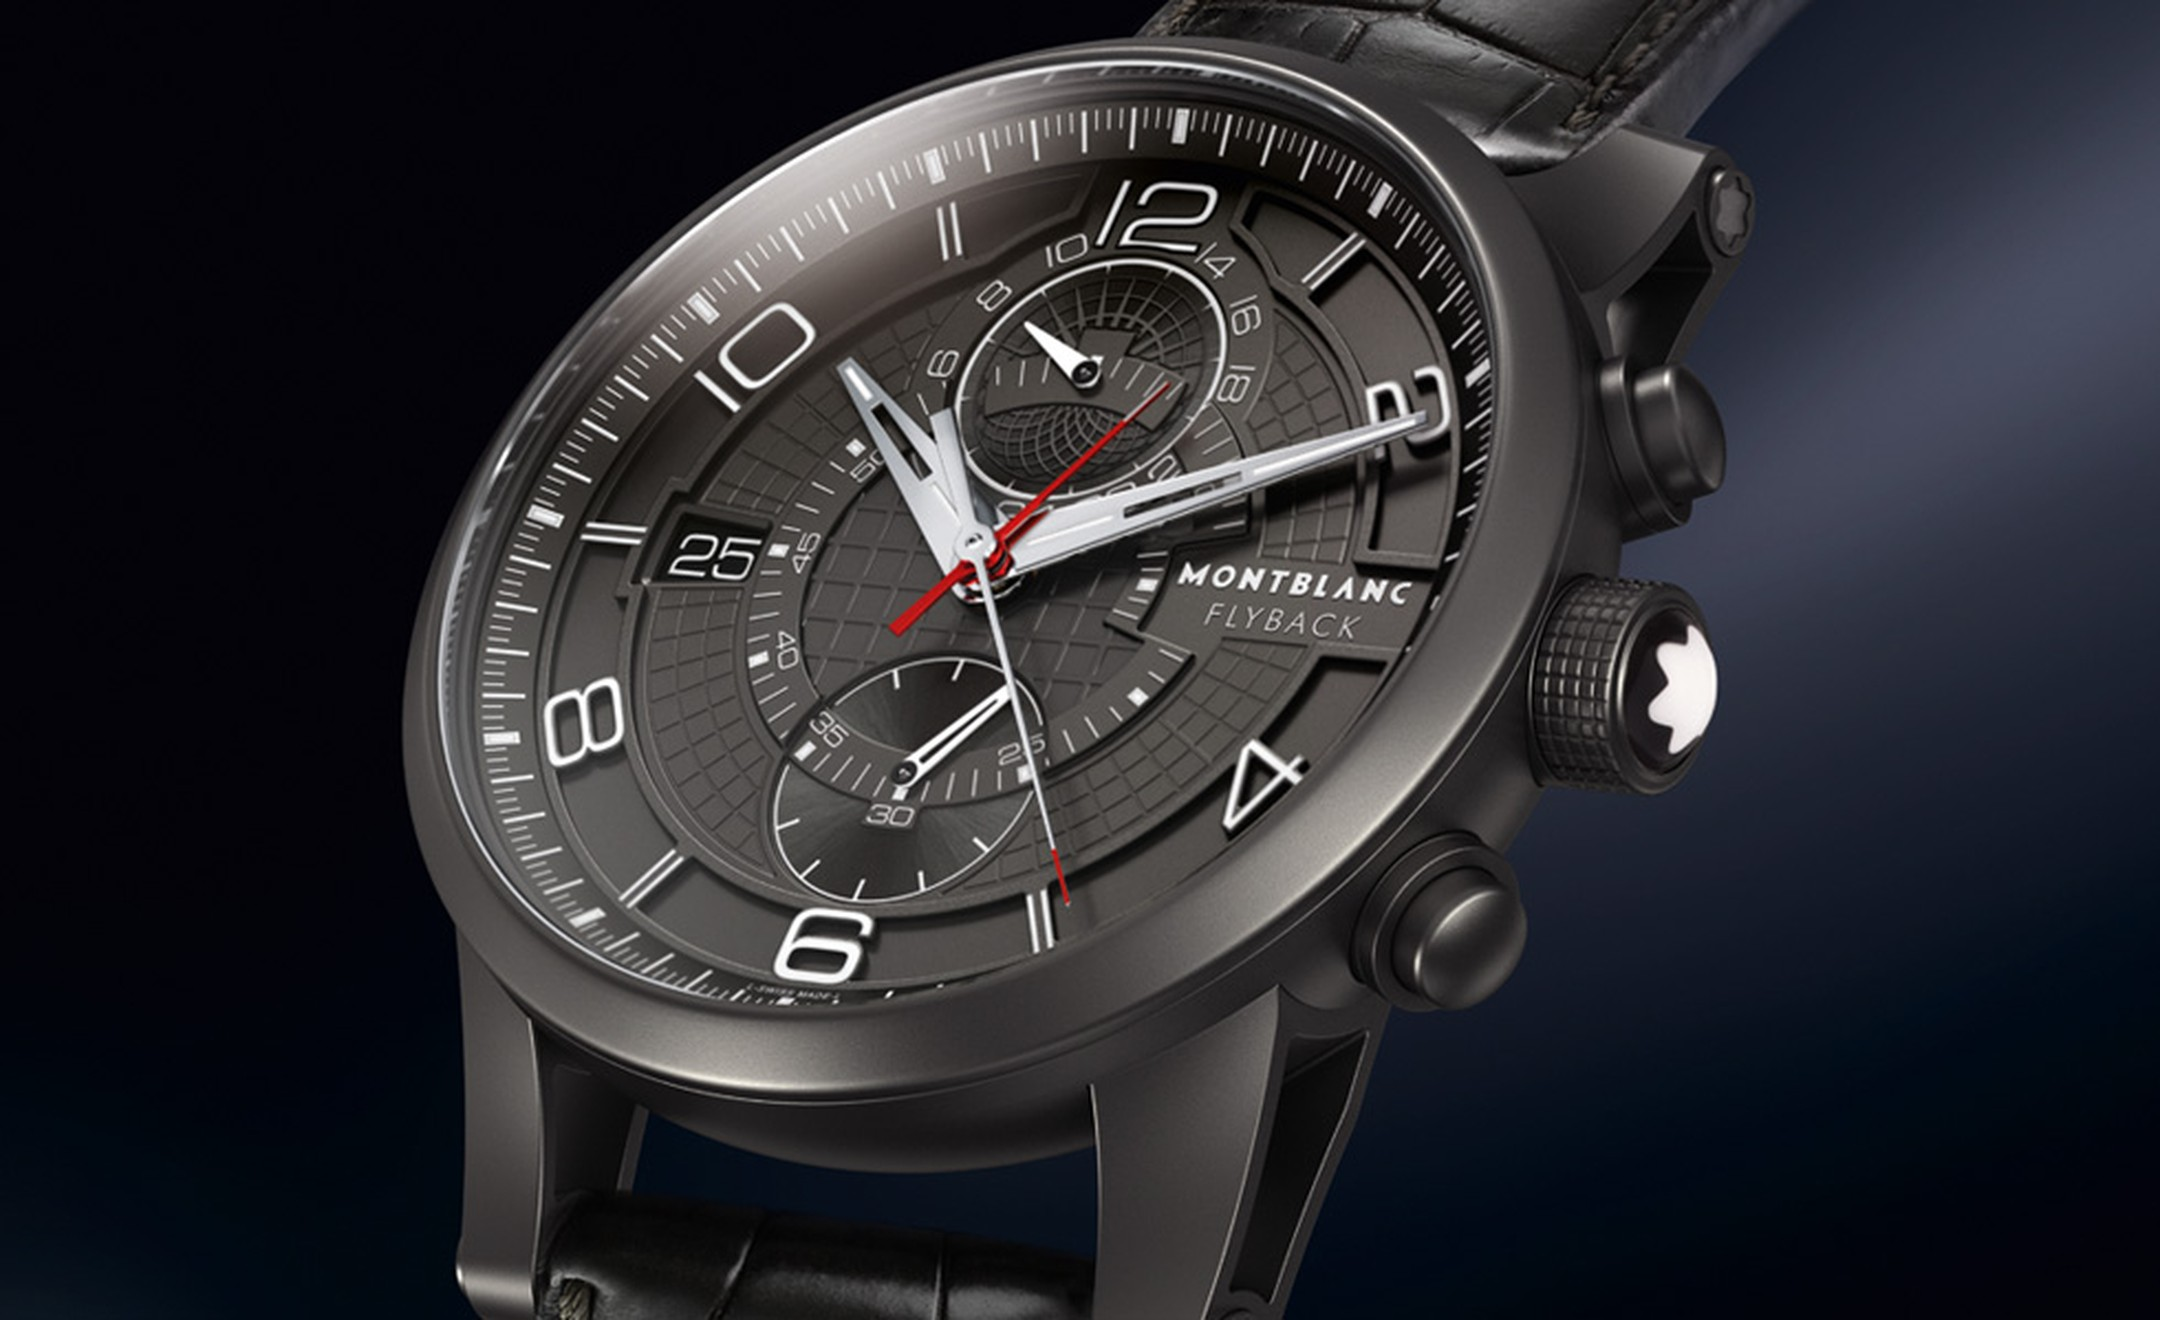 Montblanc TimeWalker TwinFly chronograph in minimalist black DLC with in-house manufactured Calibre MBLL100